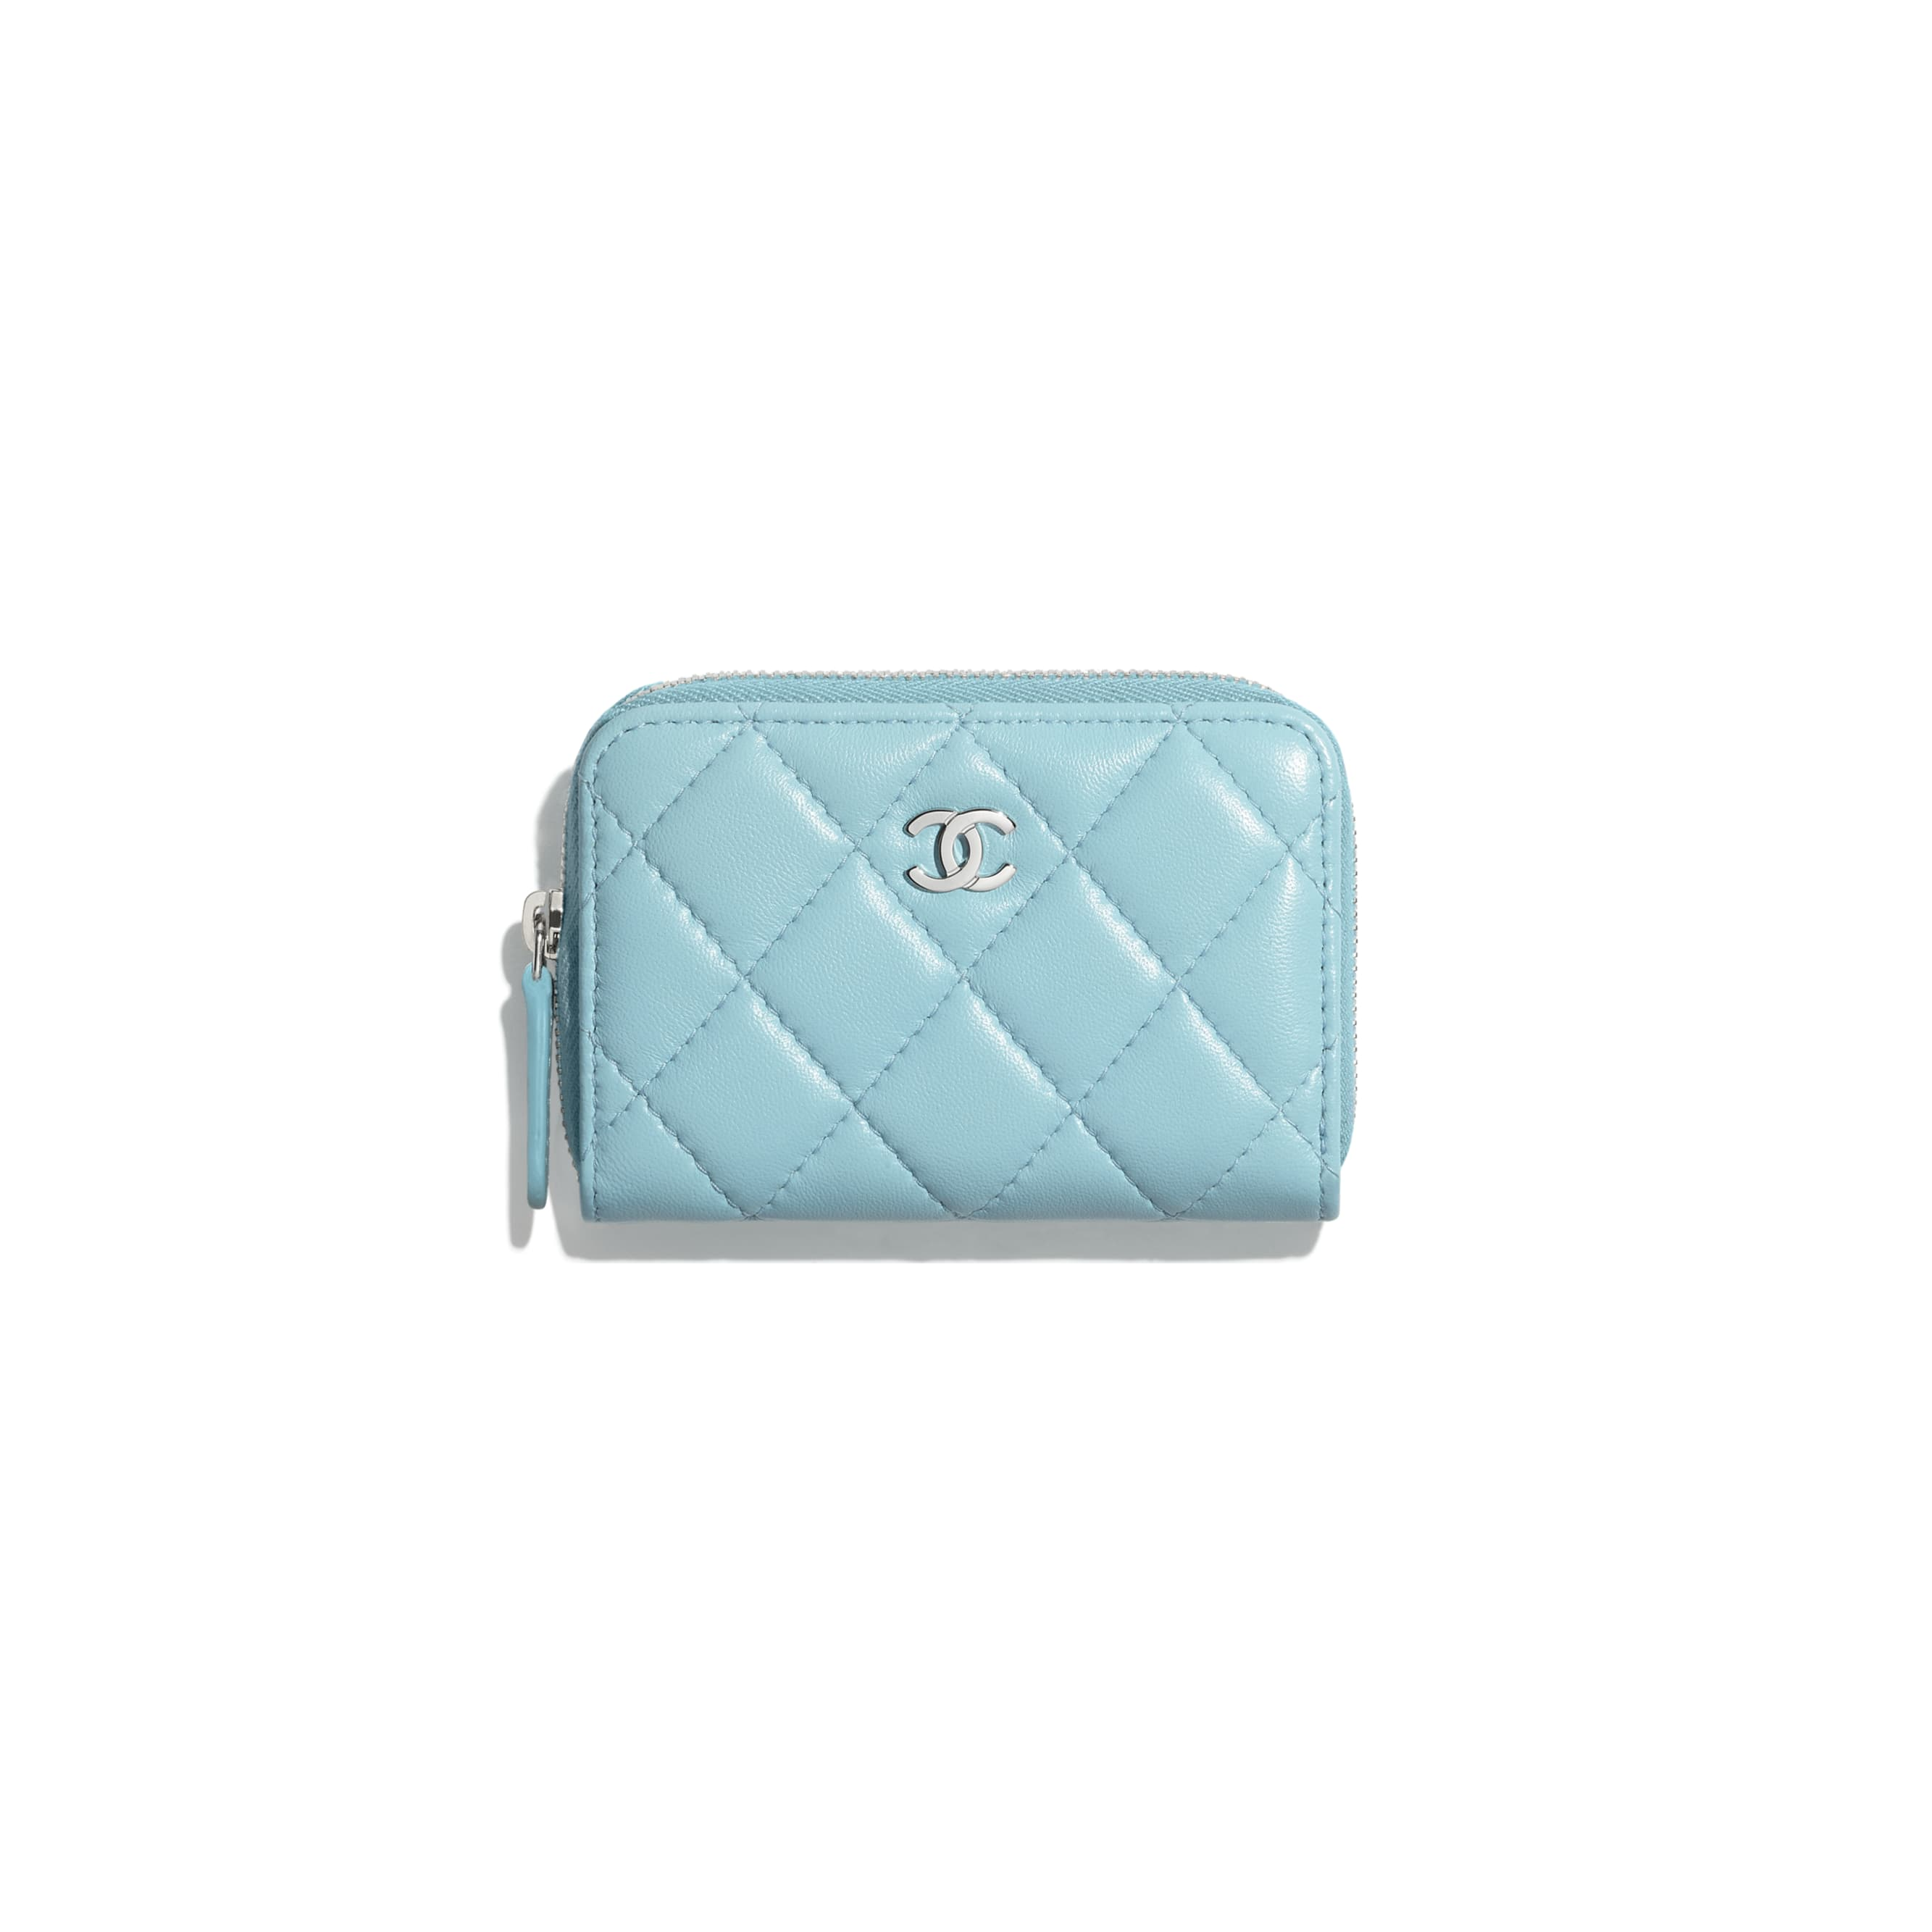 Classic Zipped Coin Purse - Neon Blue - Lambskin & Silver-Tone Metal - CHANEL - Default view - see standard sized version